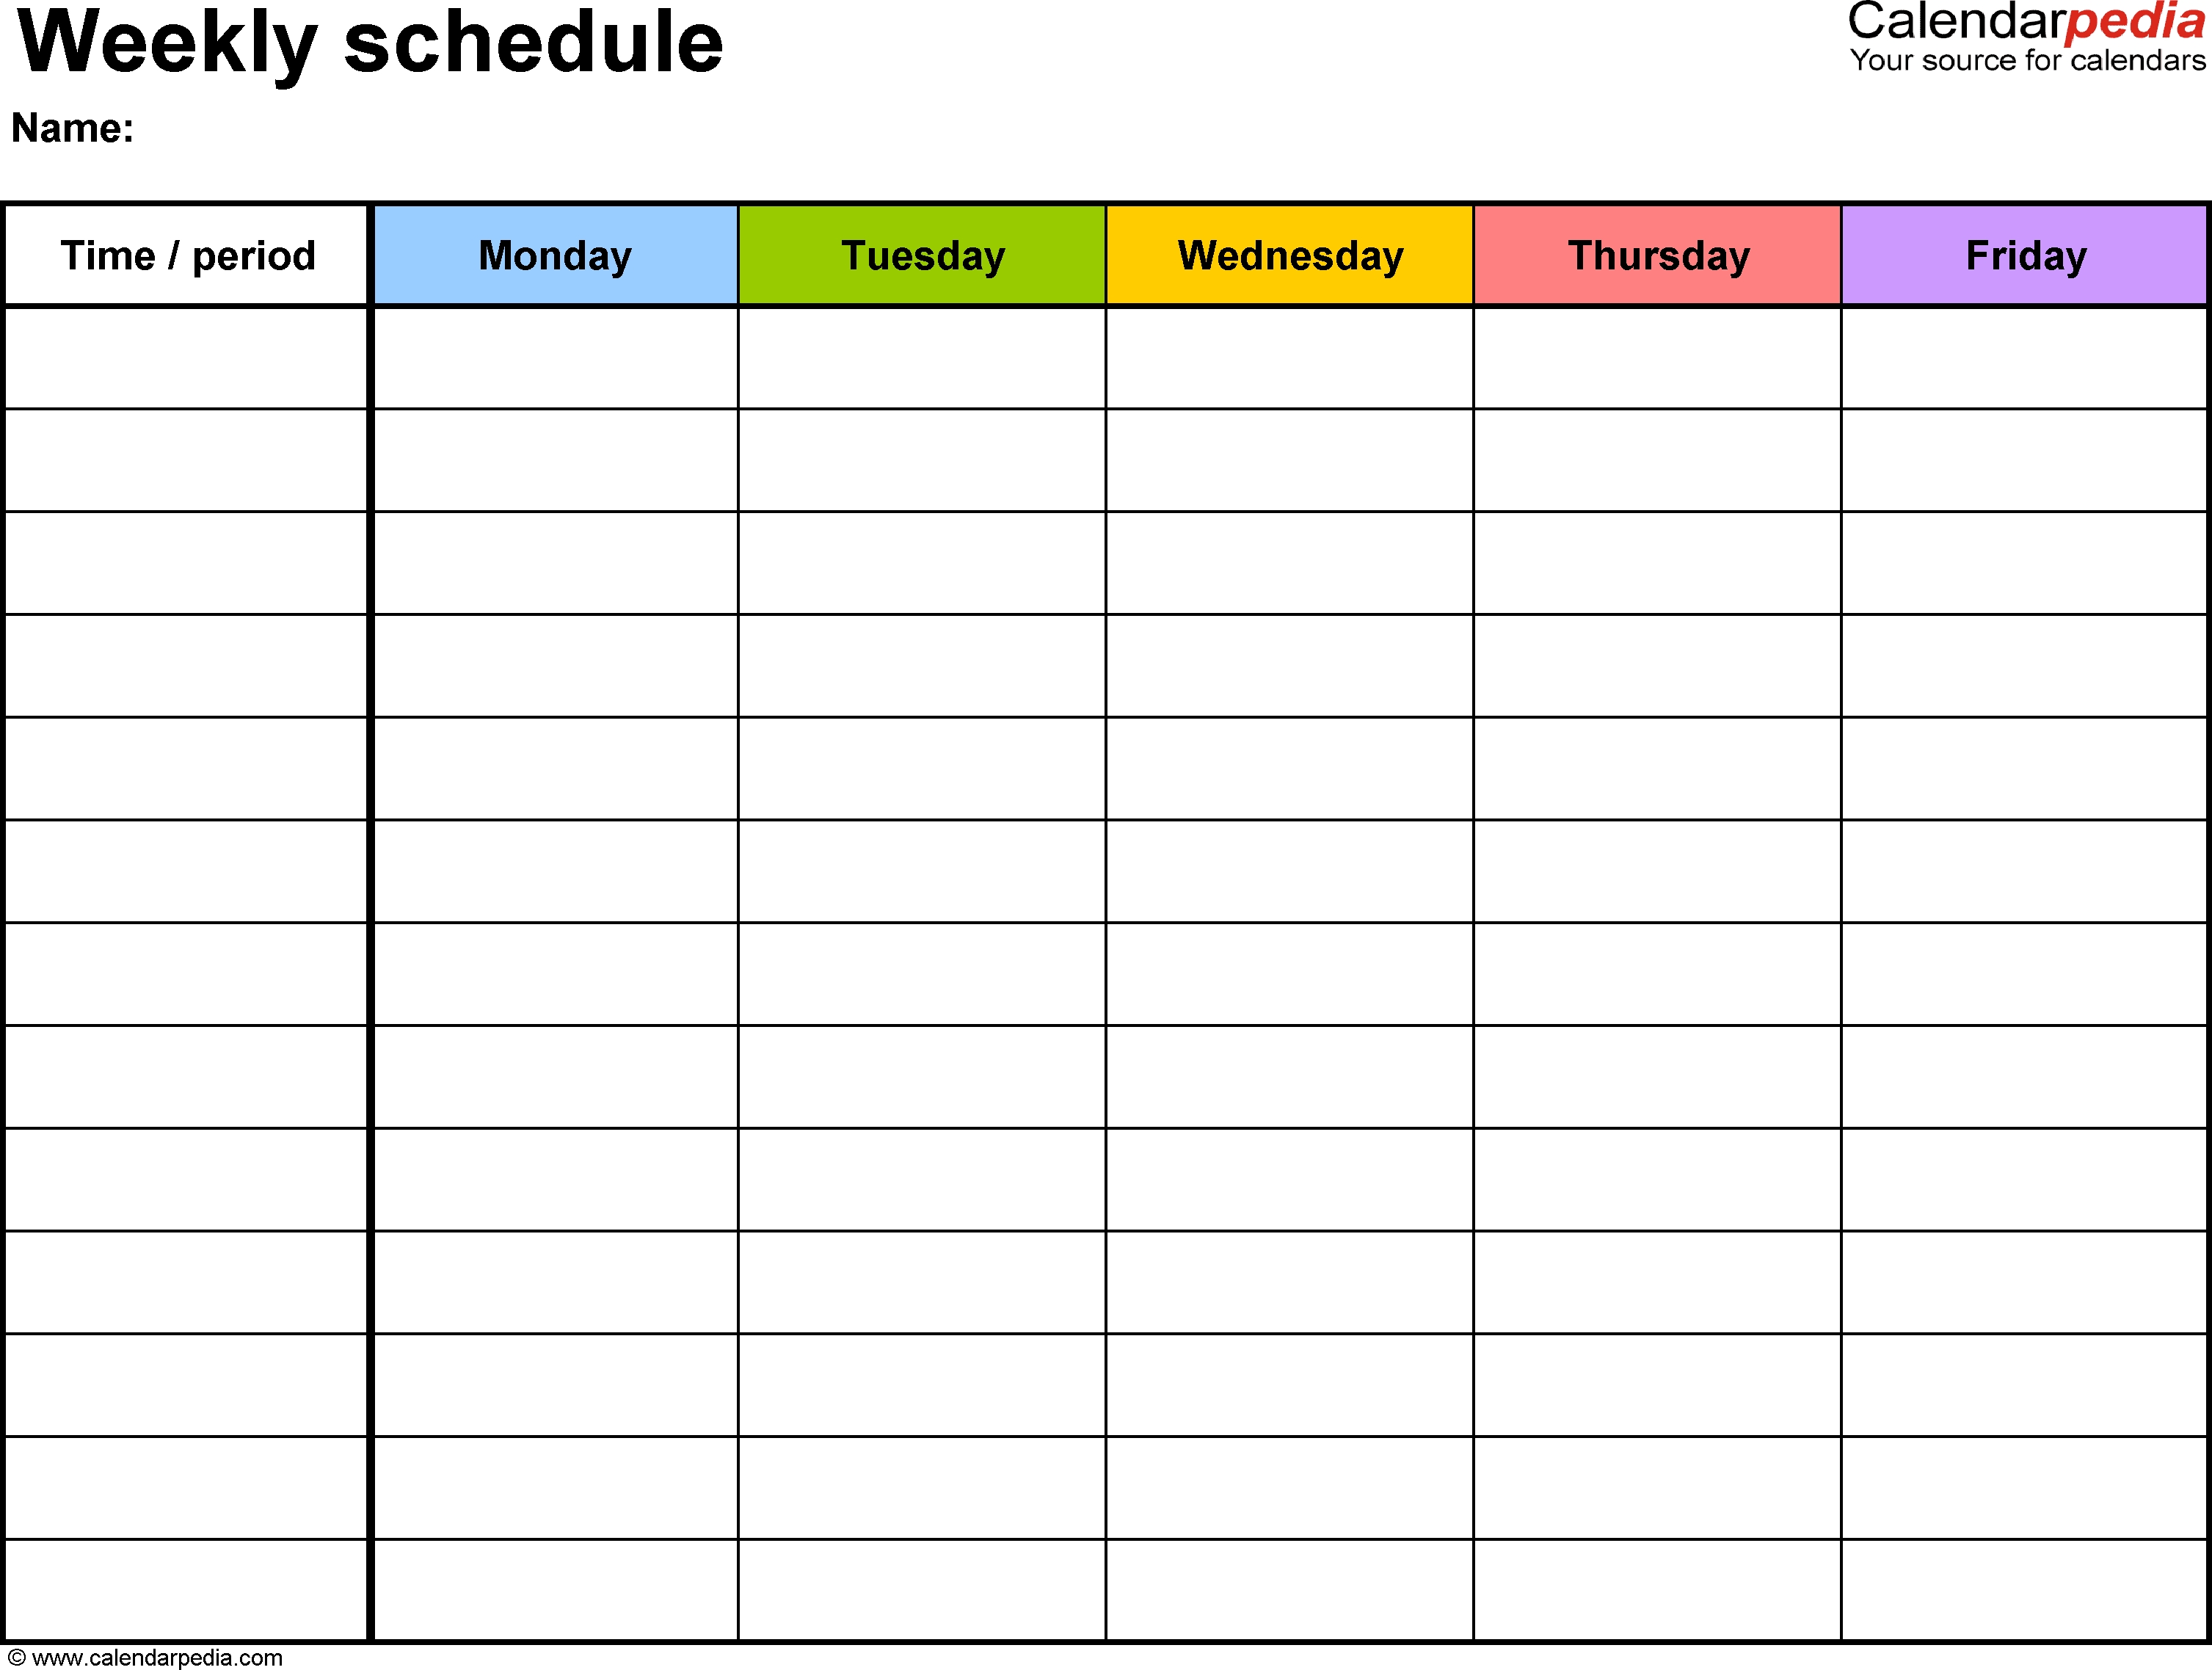 Weekly Schedule Template For Word Version 1: Landscape, 1-Monday To Sunday Weekly Planner Template Word